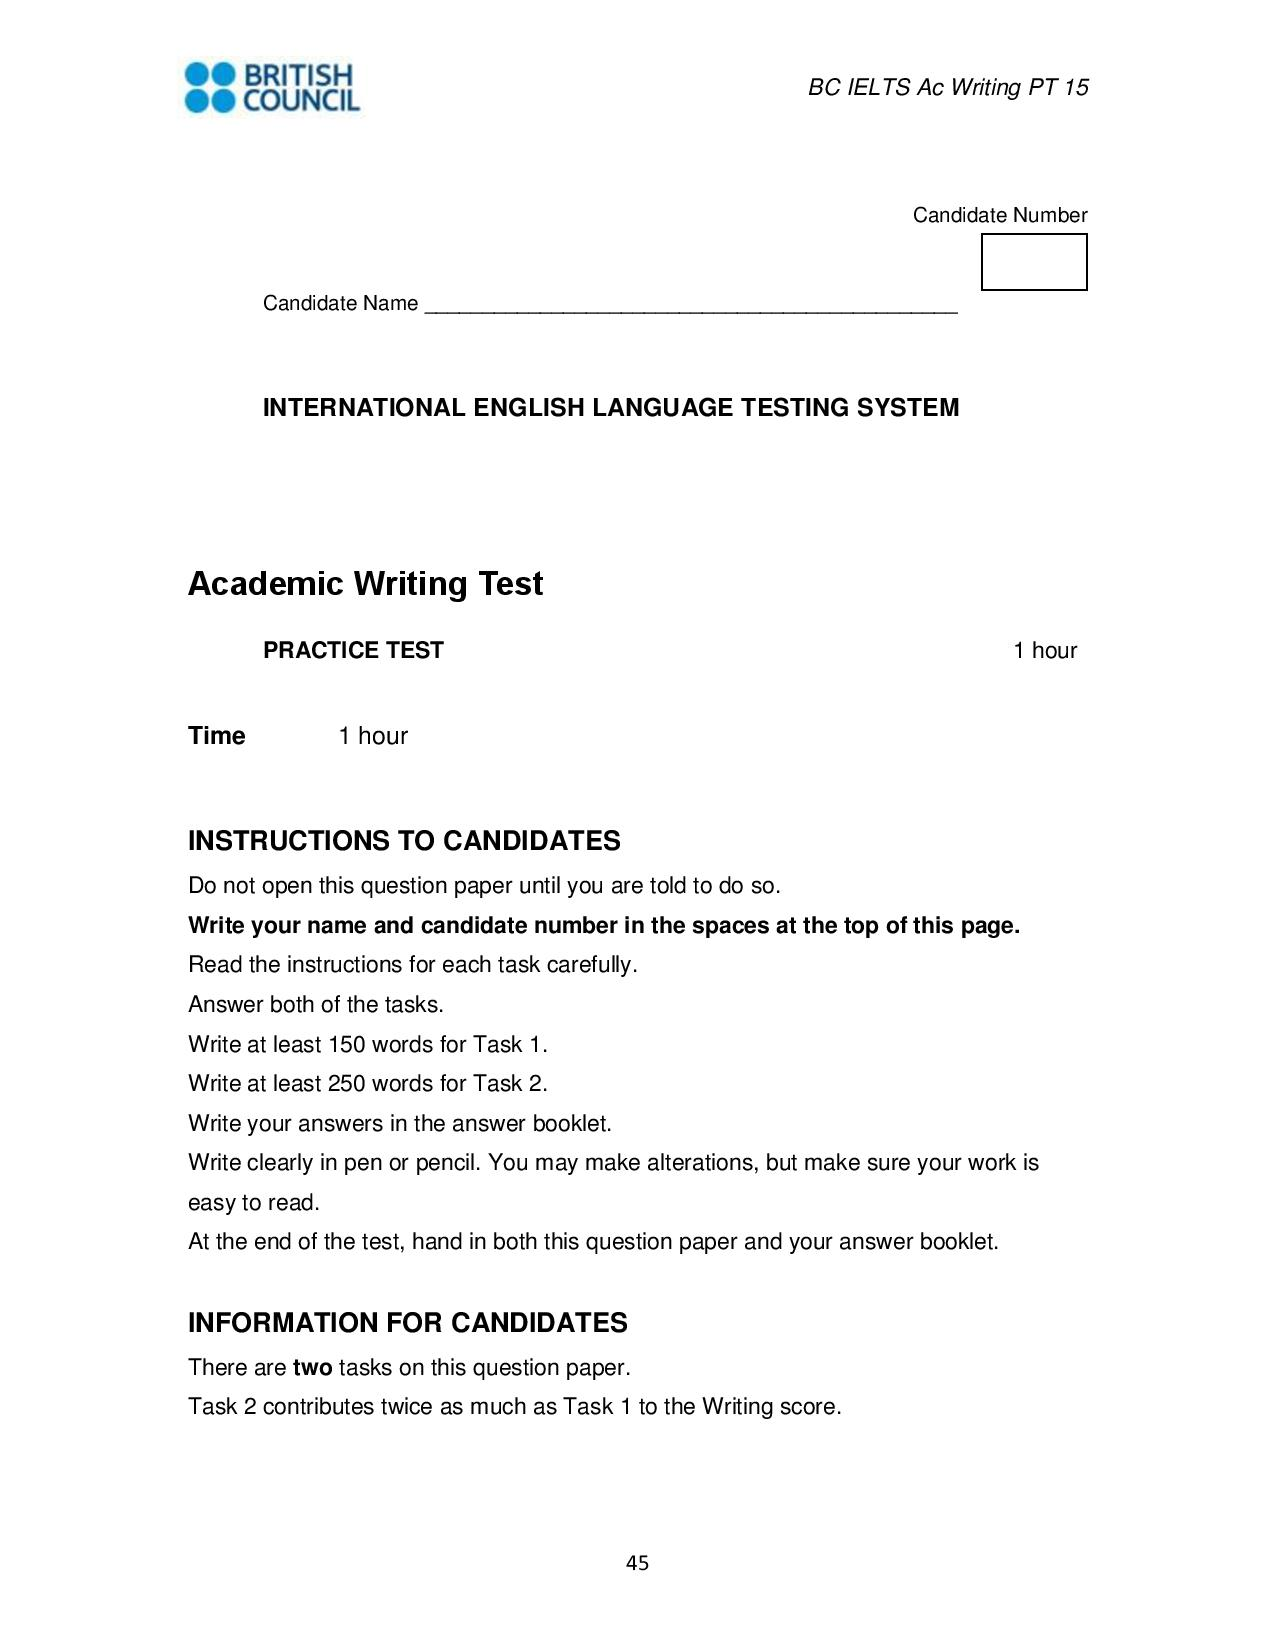 IELTS Writing Practice